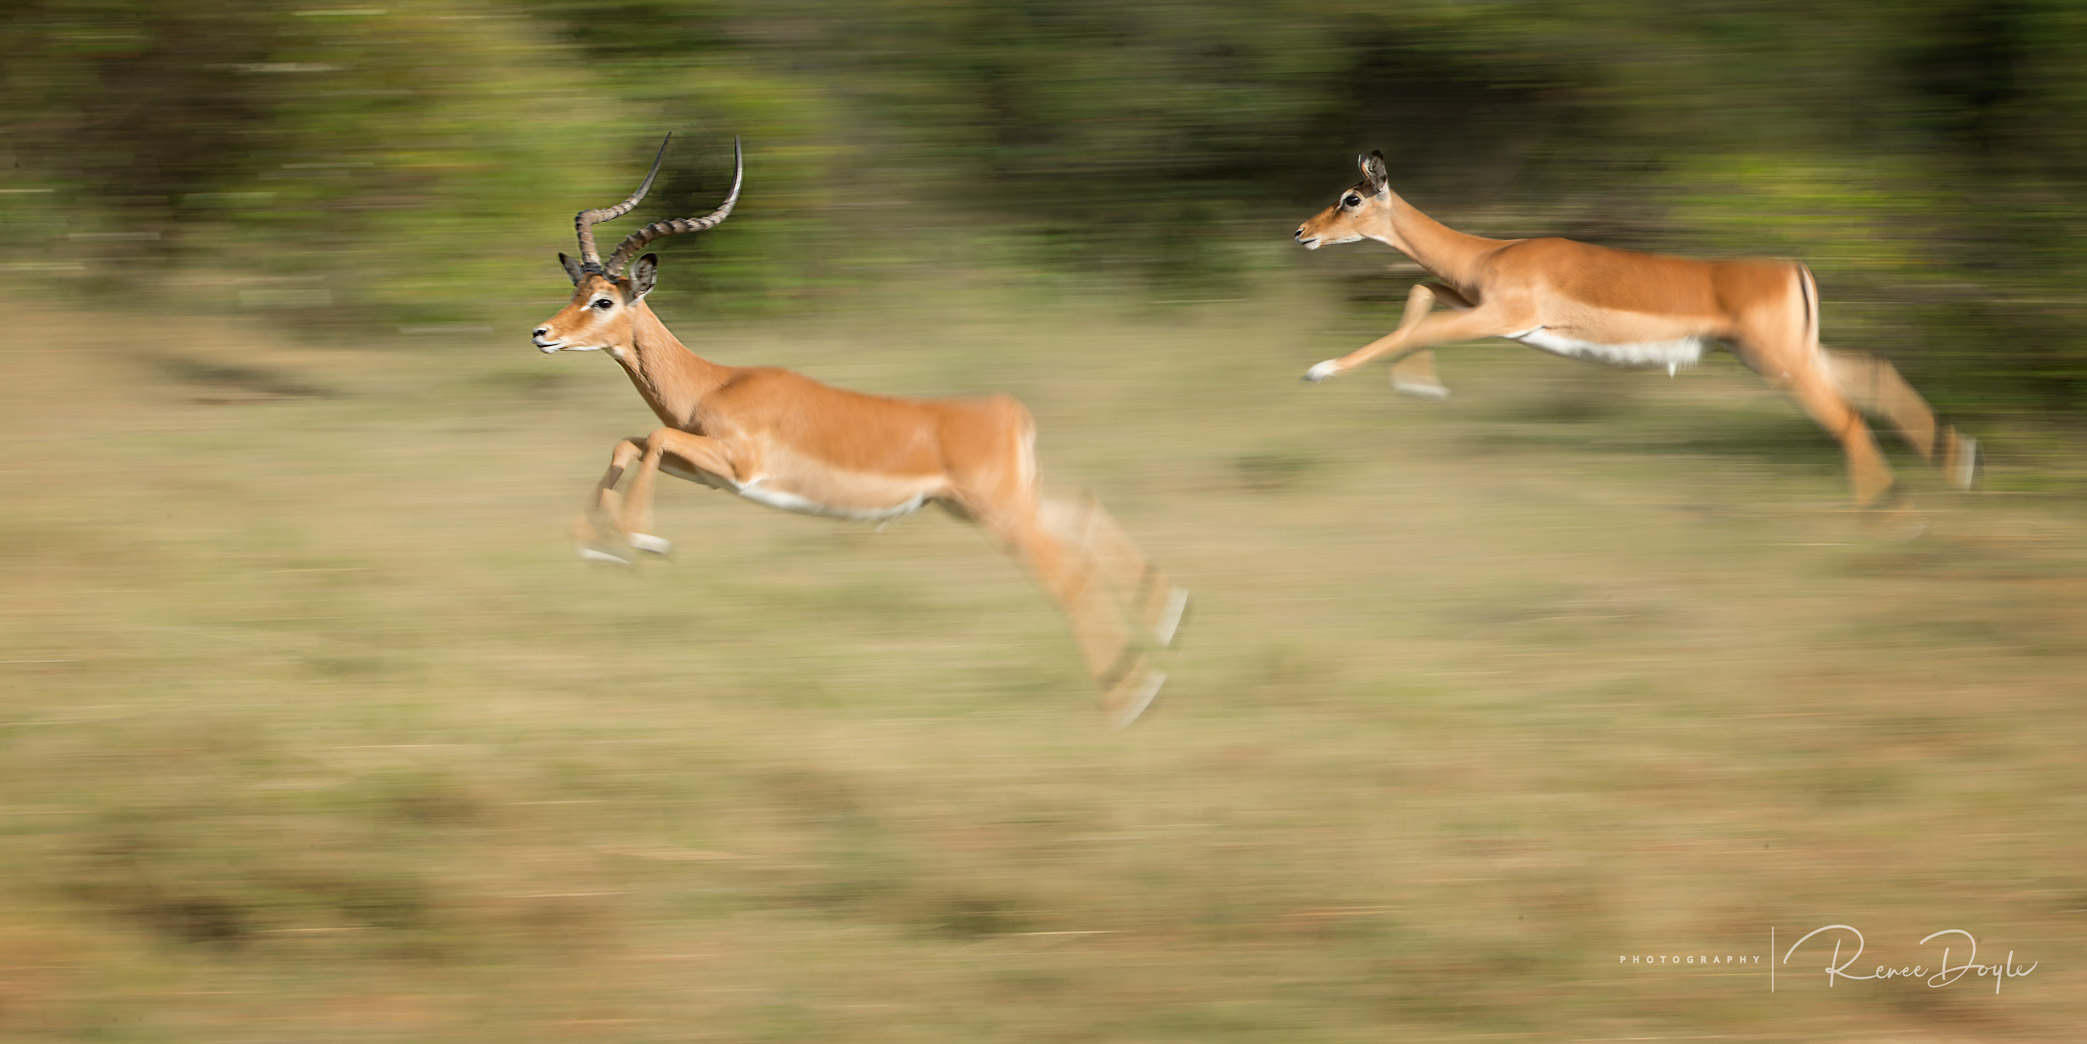 Antelope, Grants Gazelle, Running, Africa, Kenya, Masai mara, Renee Doyle Photography